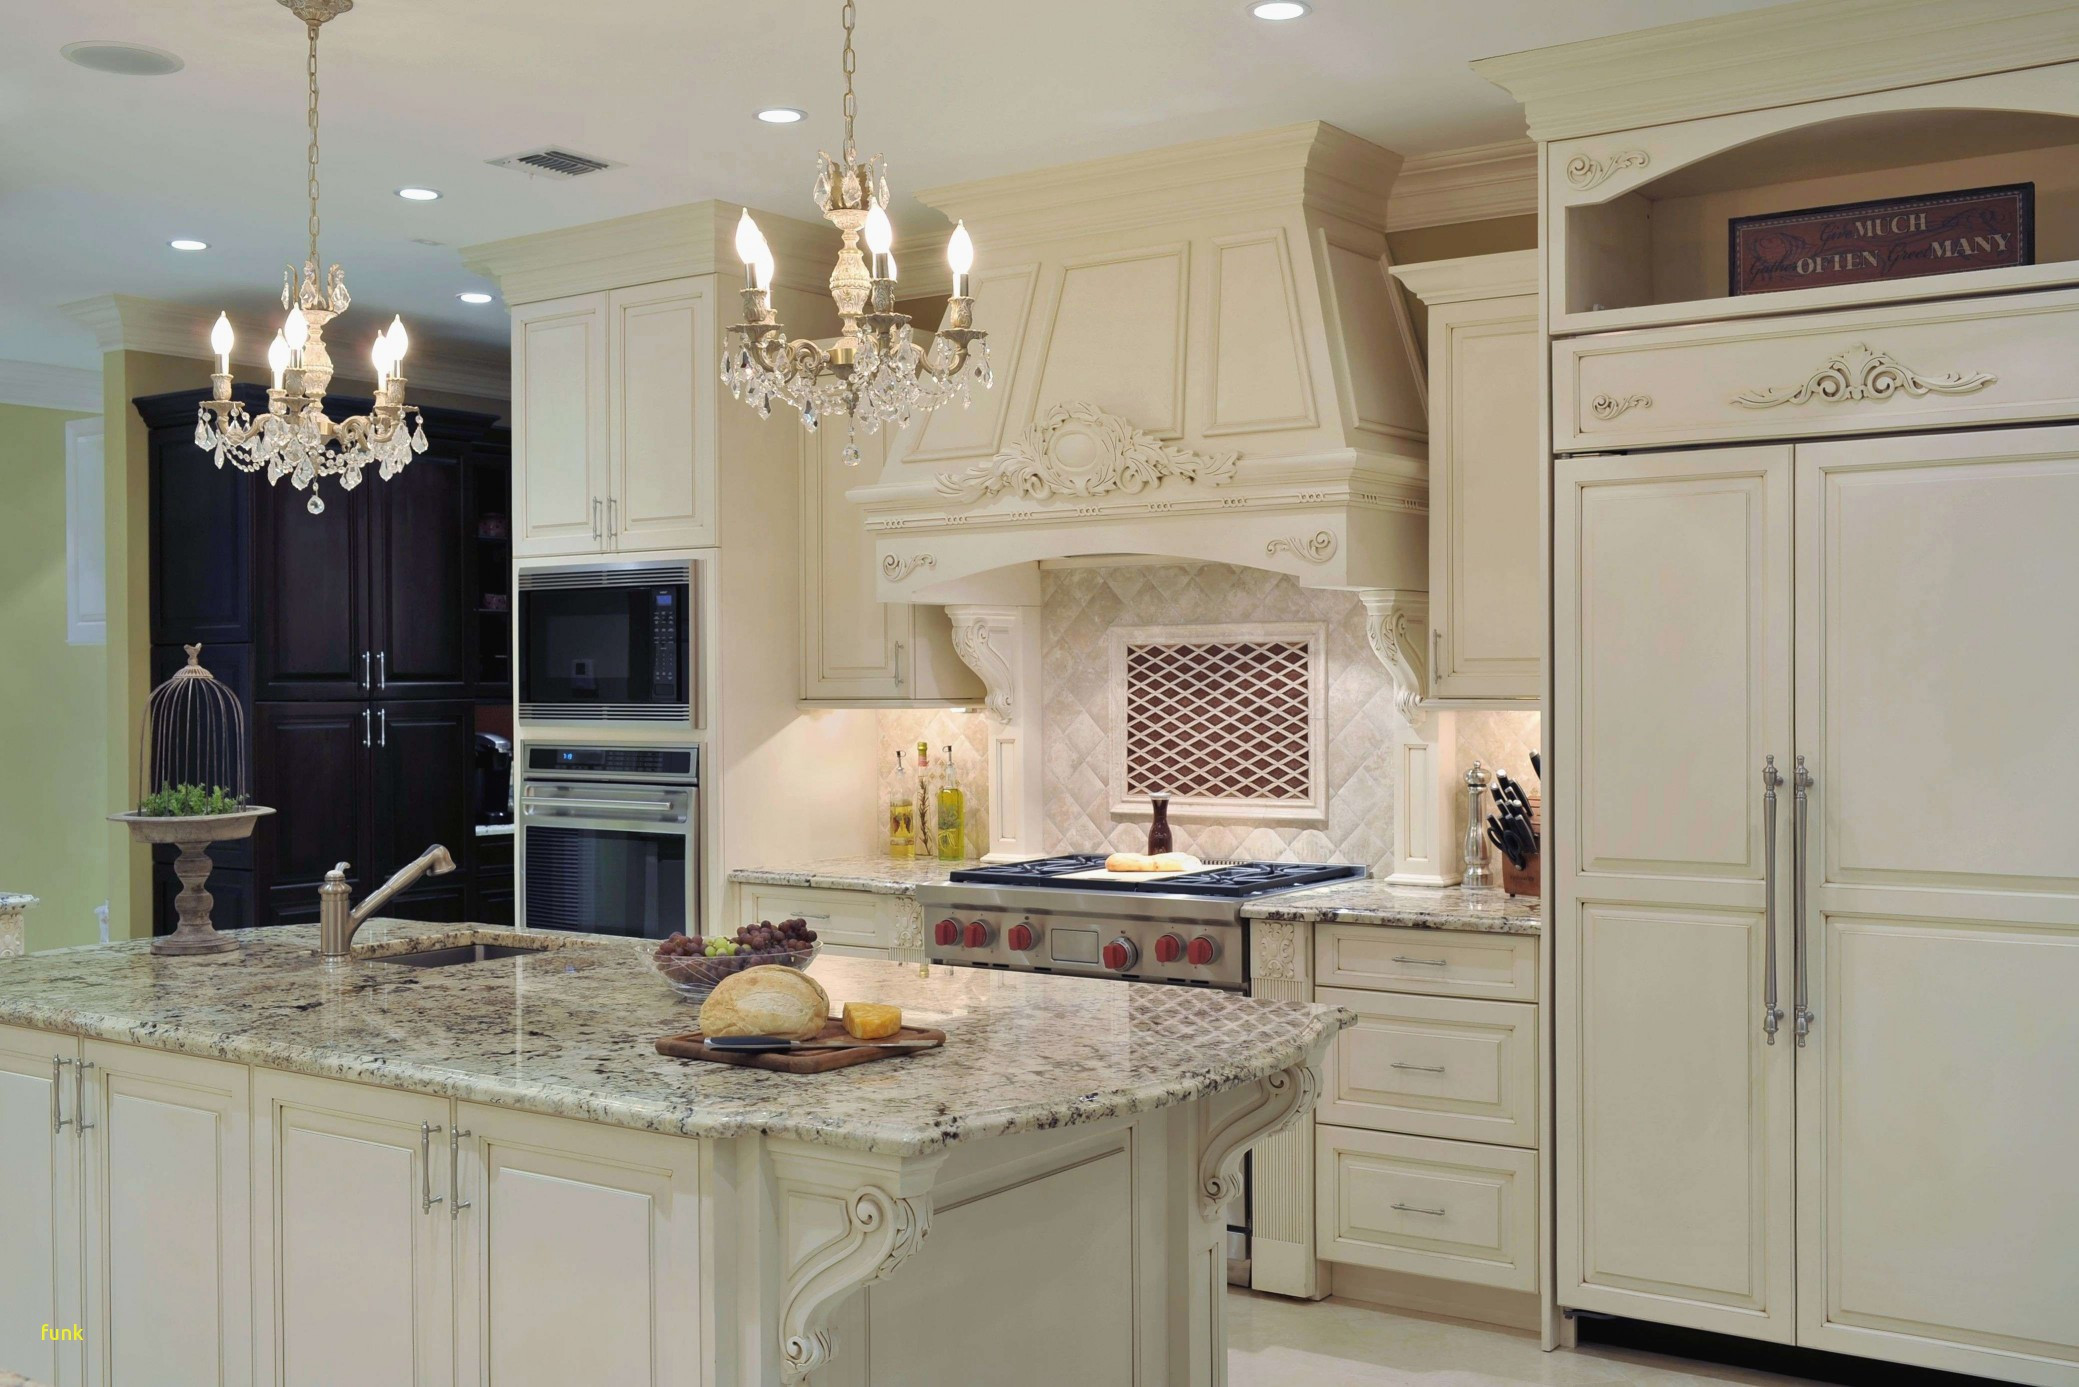 Pictures Of Hardwood Floors In Kitchens Of 37 Modern solid Wood Kitchen Cabinets Decoration Intended for Wood Kitchen Cabinets Beautiful How Much is Kitchen Cabinet Installation Lovely Kitchen Cabinet 0d